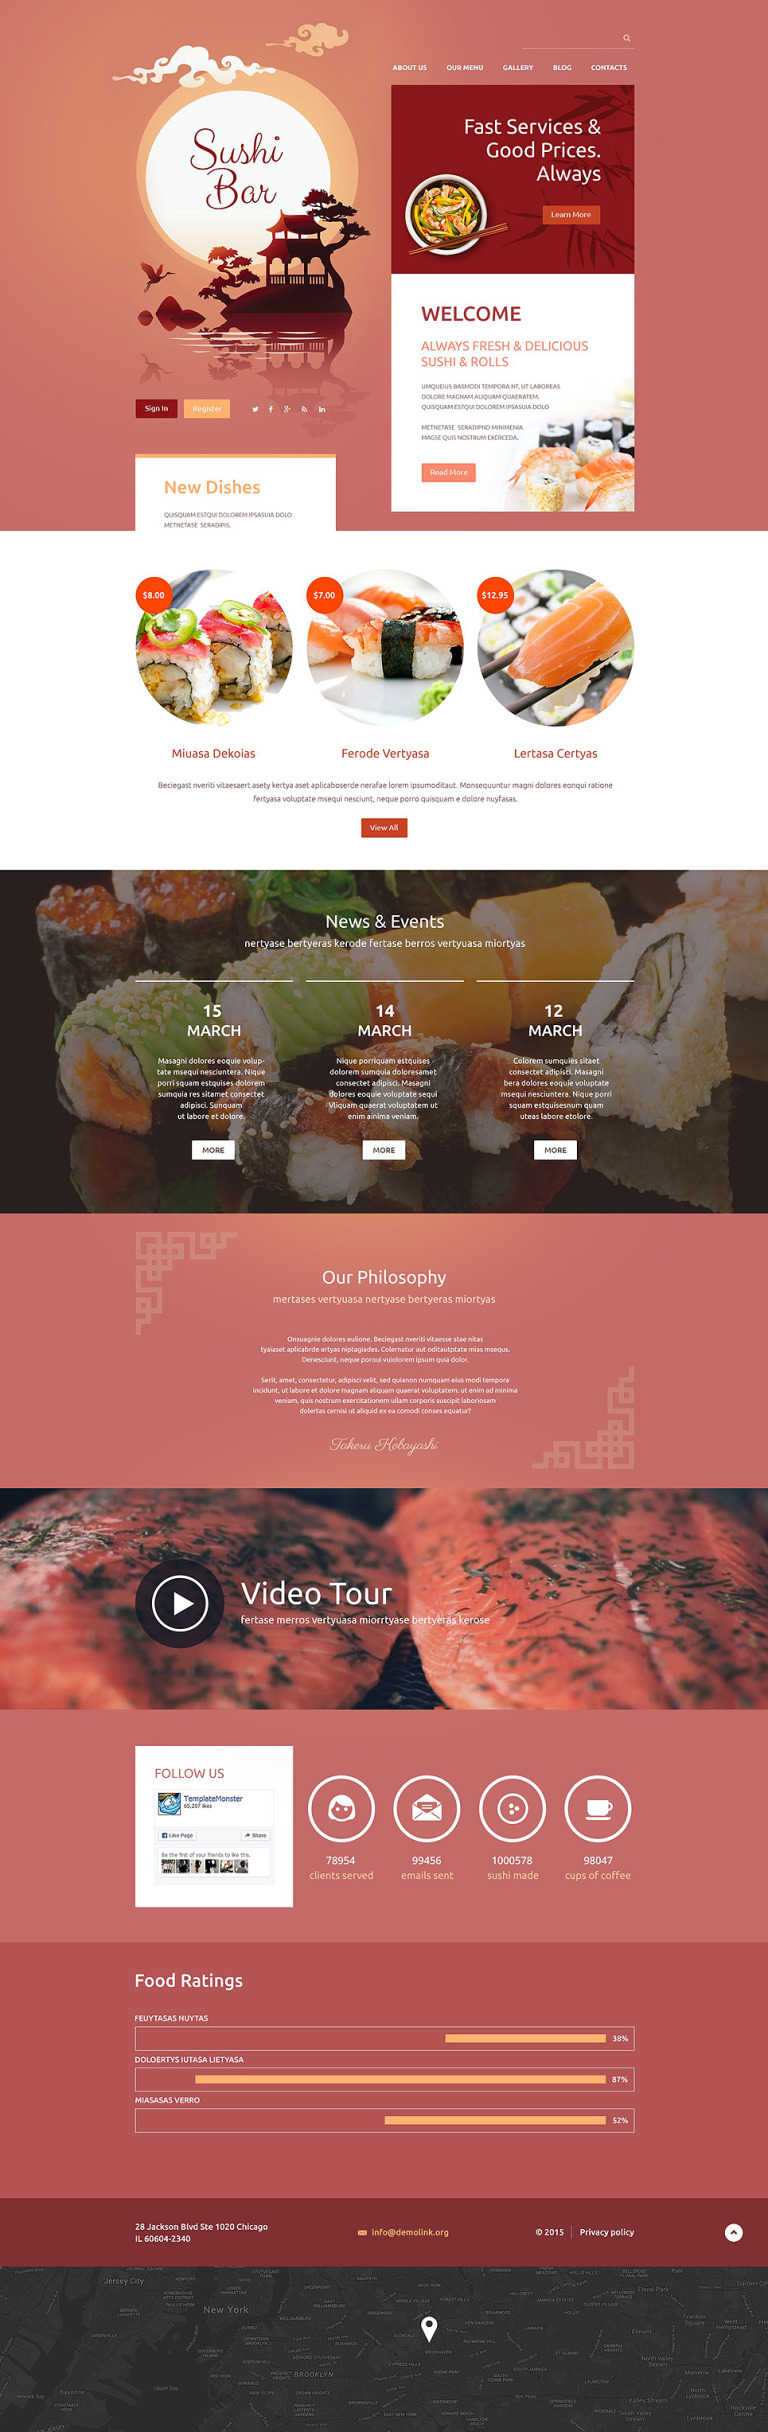 Sushi Bar Drupal Template New Screenshots BIG